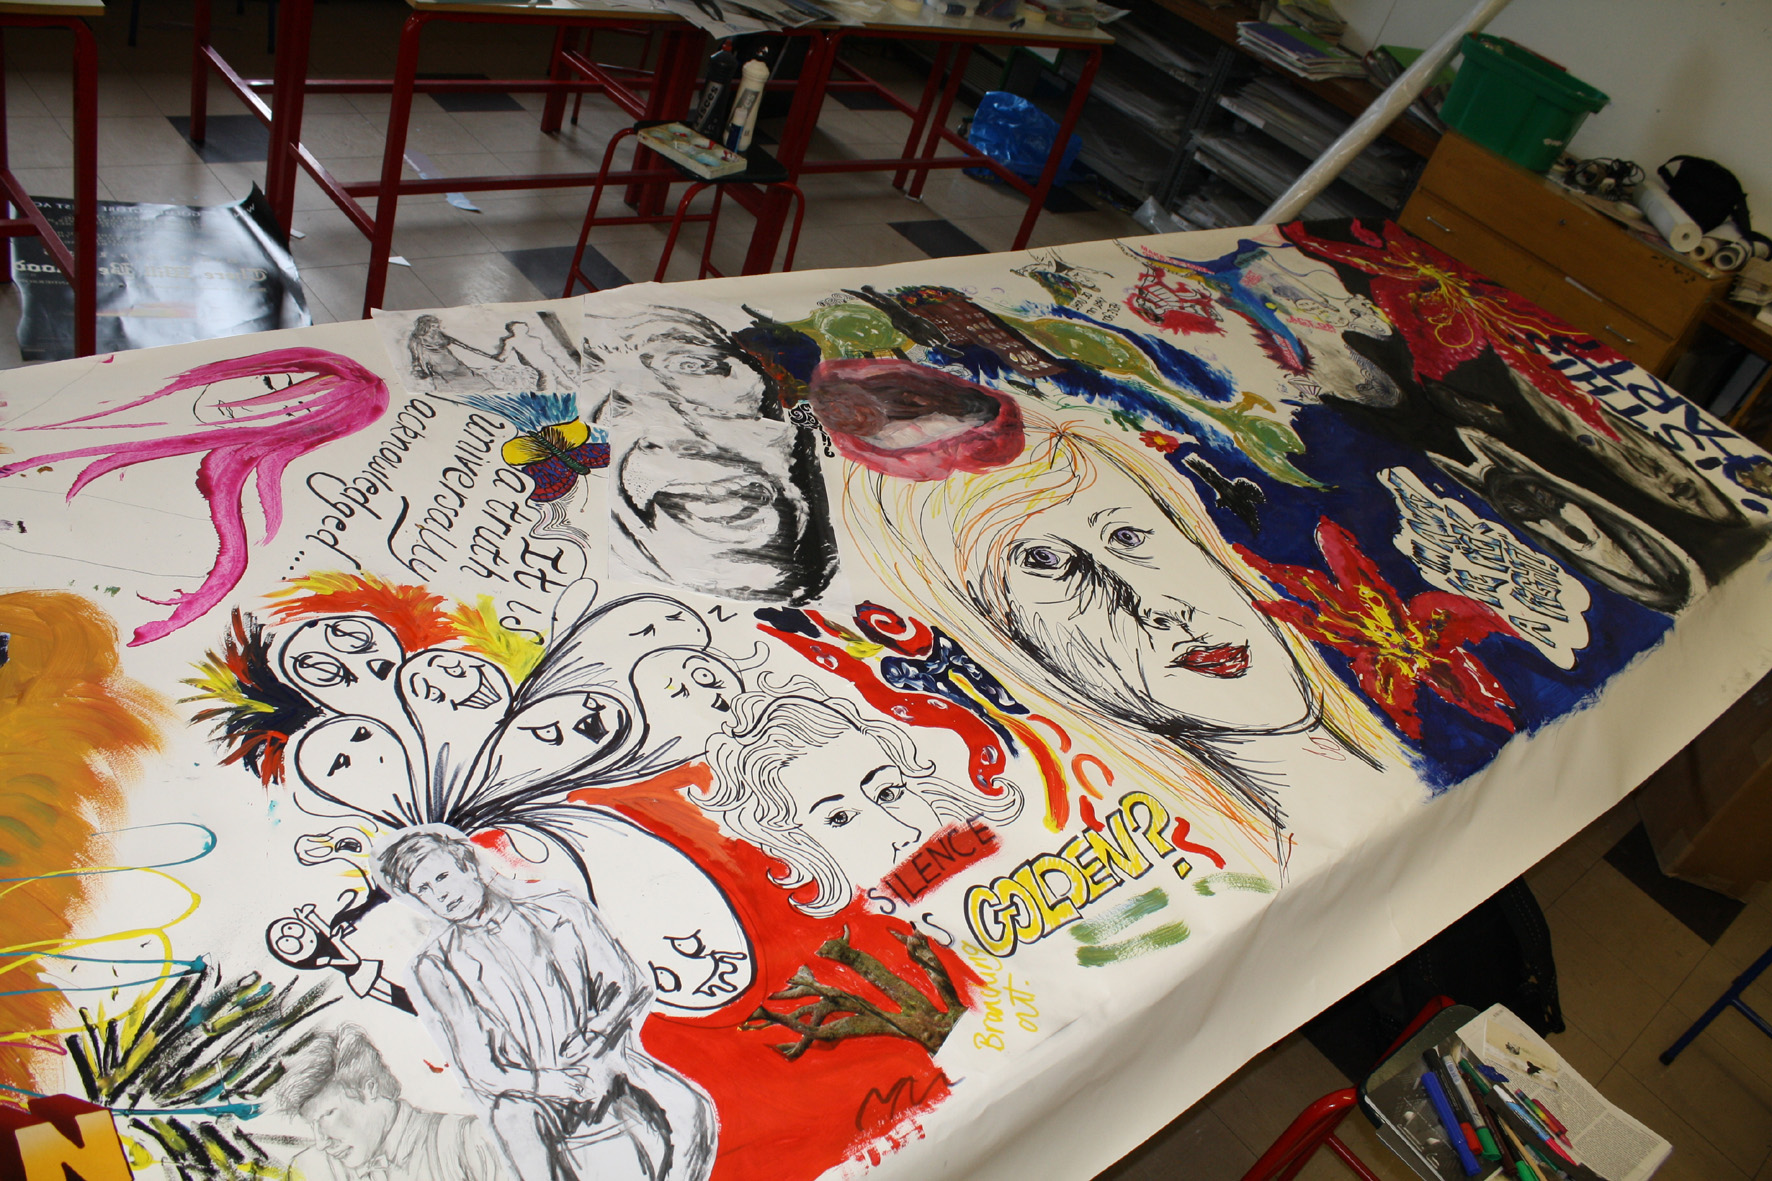 39 in progress Culloden Academy Art and Design Blog